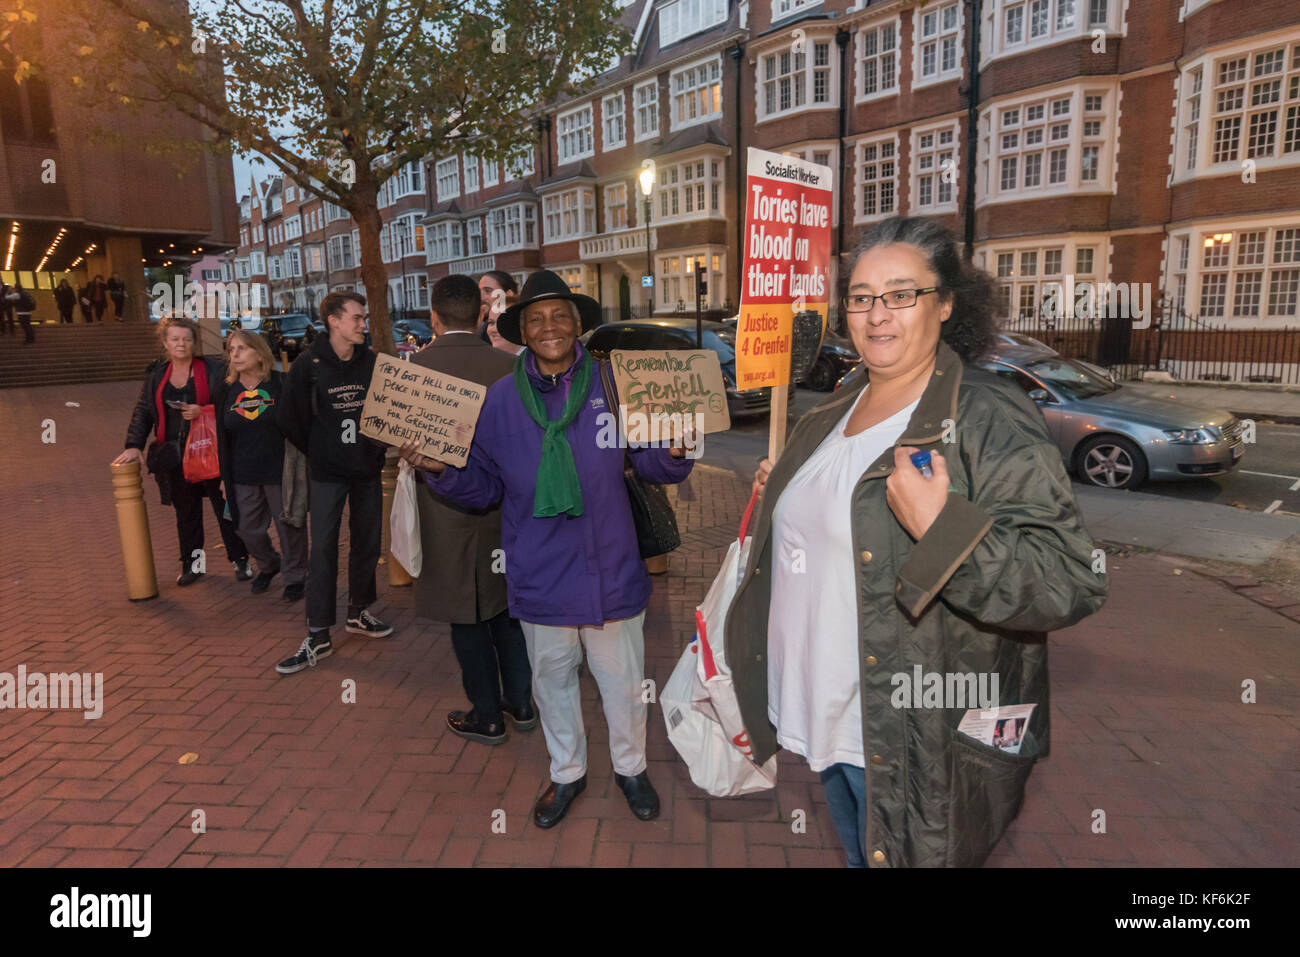 London, UK. 25th Oct,  2017. Protesters outside the Royal Borough of Kensington & Chelsea council meeting holds - Stock Image